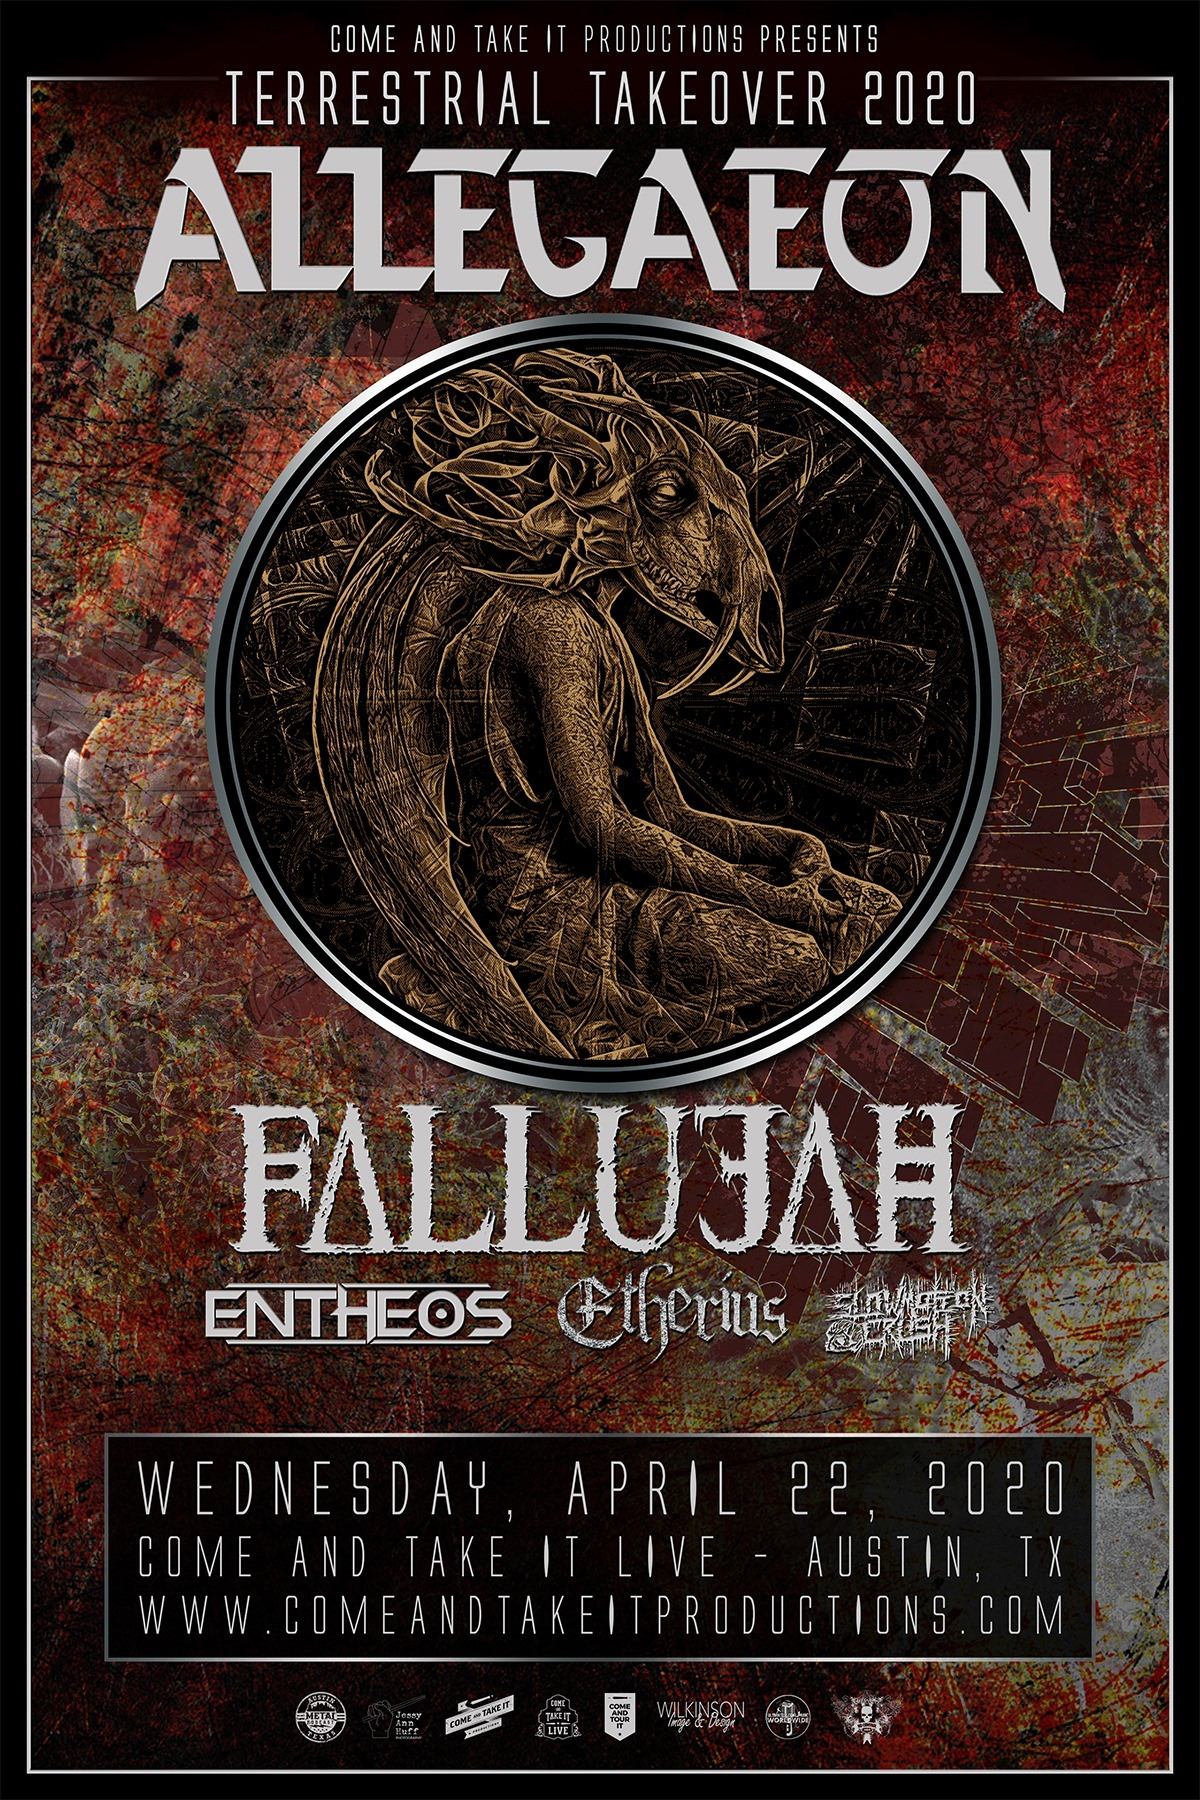 Allegaeon, Fallujah, Entheos, Etherius and more